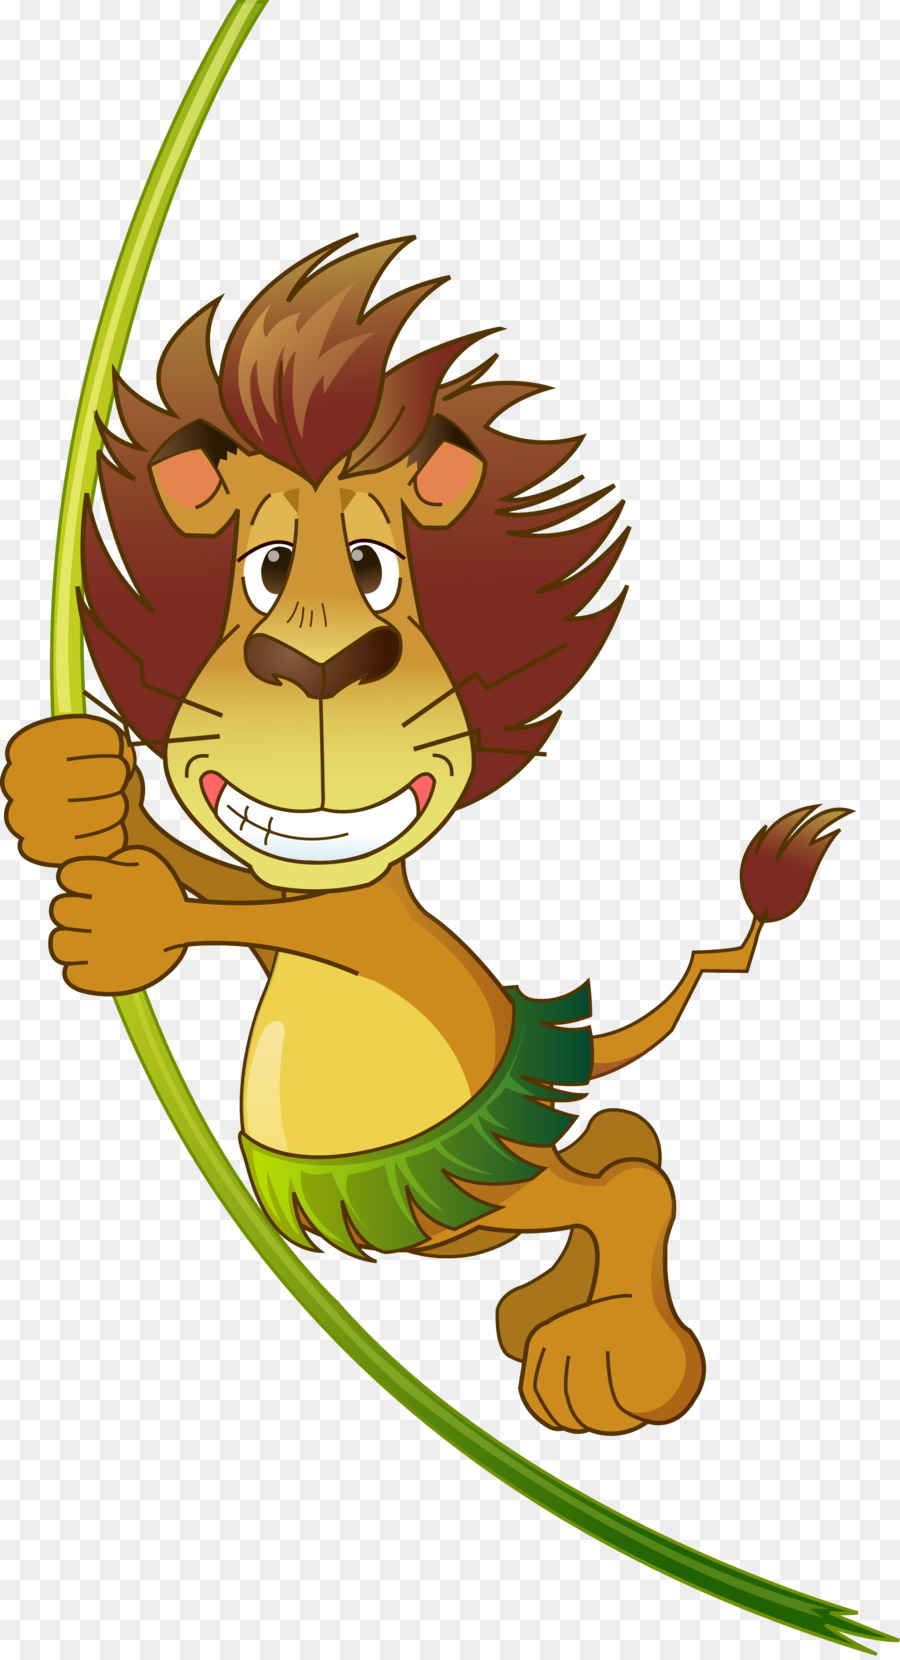 Lion Sticker Child Wall decal Clip art - 81 png download - 2399*4414 ...